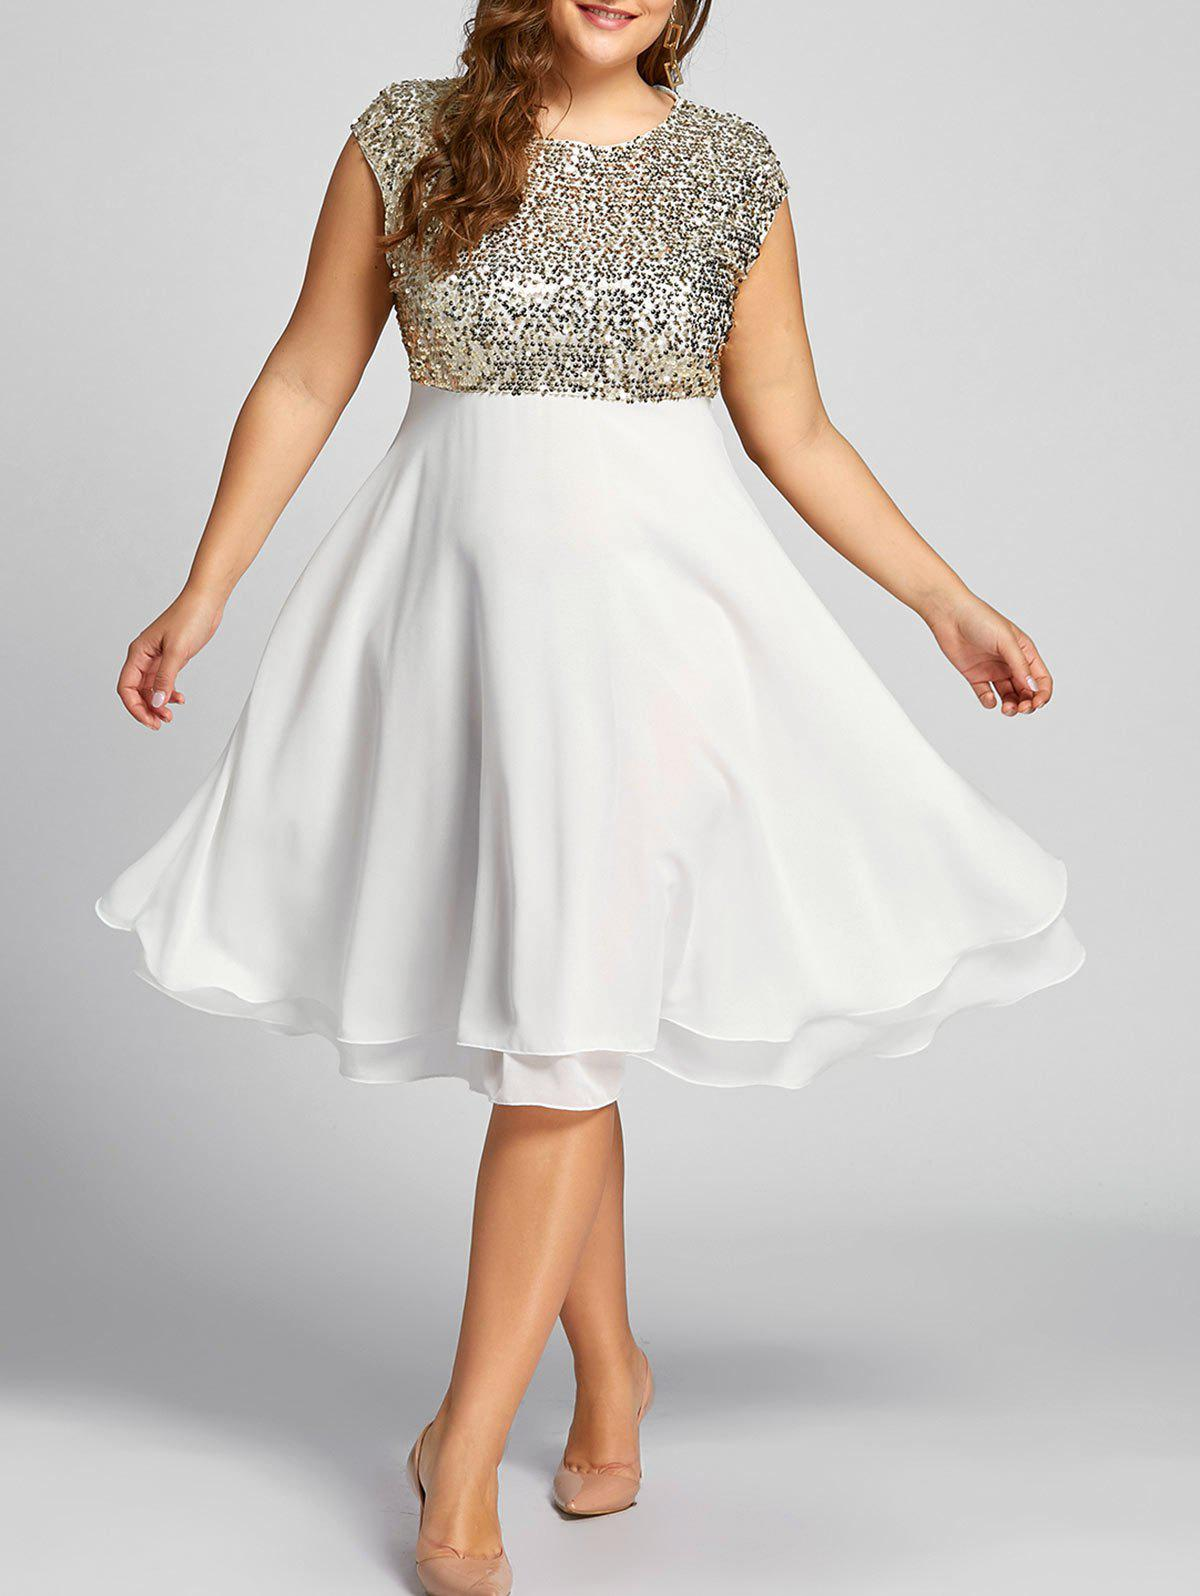 Outfit Flounce Plus Size Sparkly Sequin Cocktail Dress